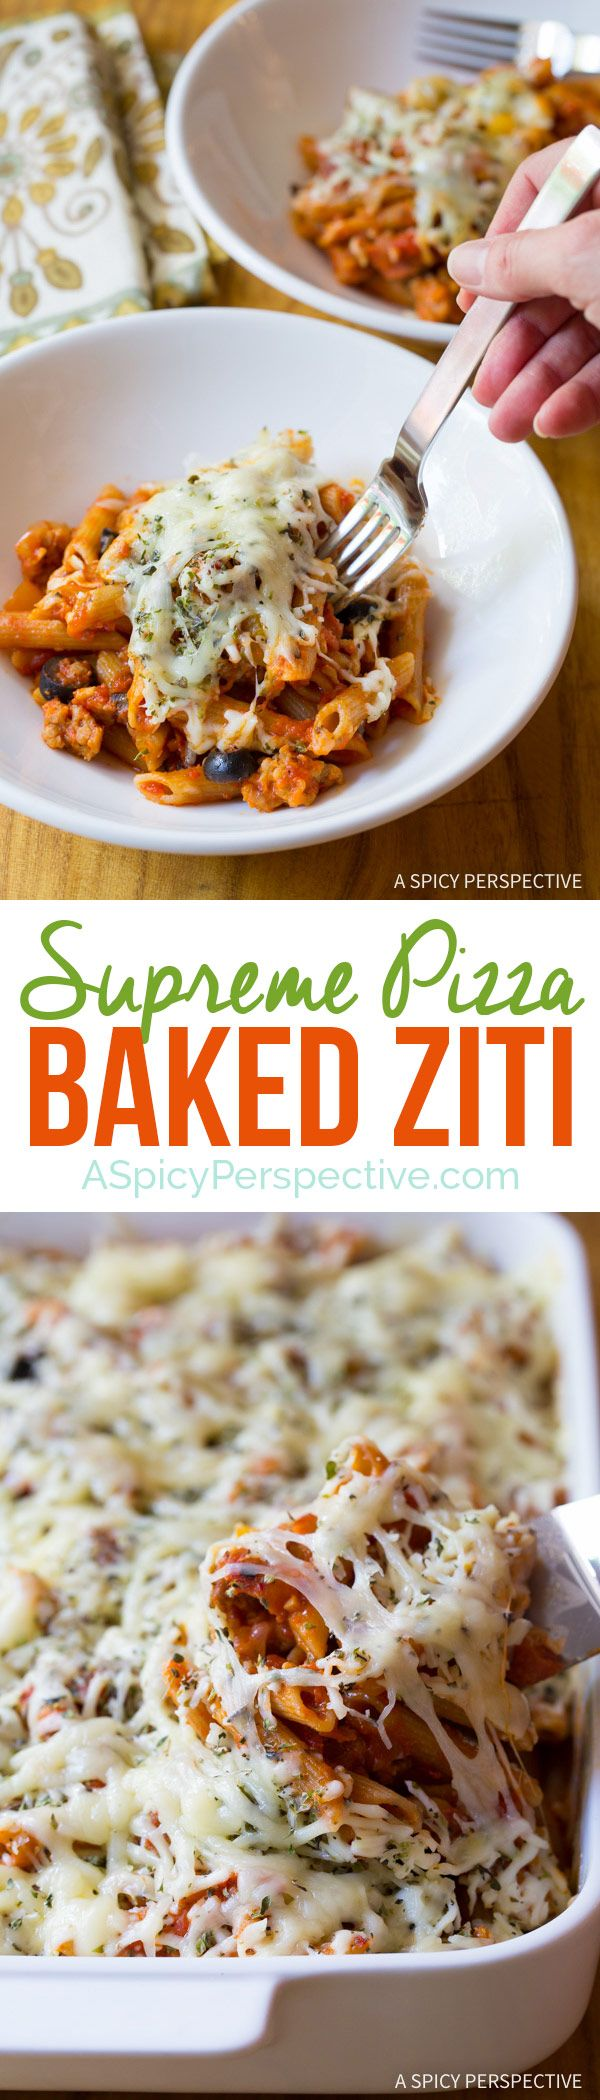 A Hearty Cozy Family Favorite - Supreme Pizza Baked Ziti Recipe on ASpicyPerspective.com #pasta